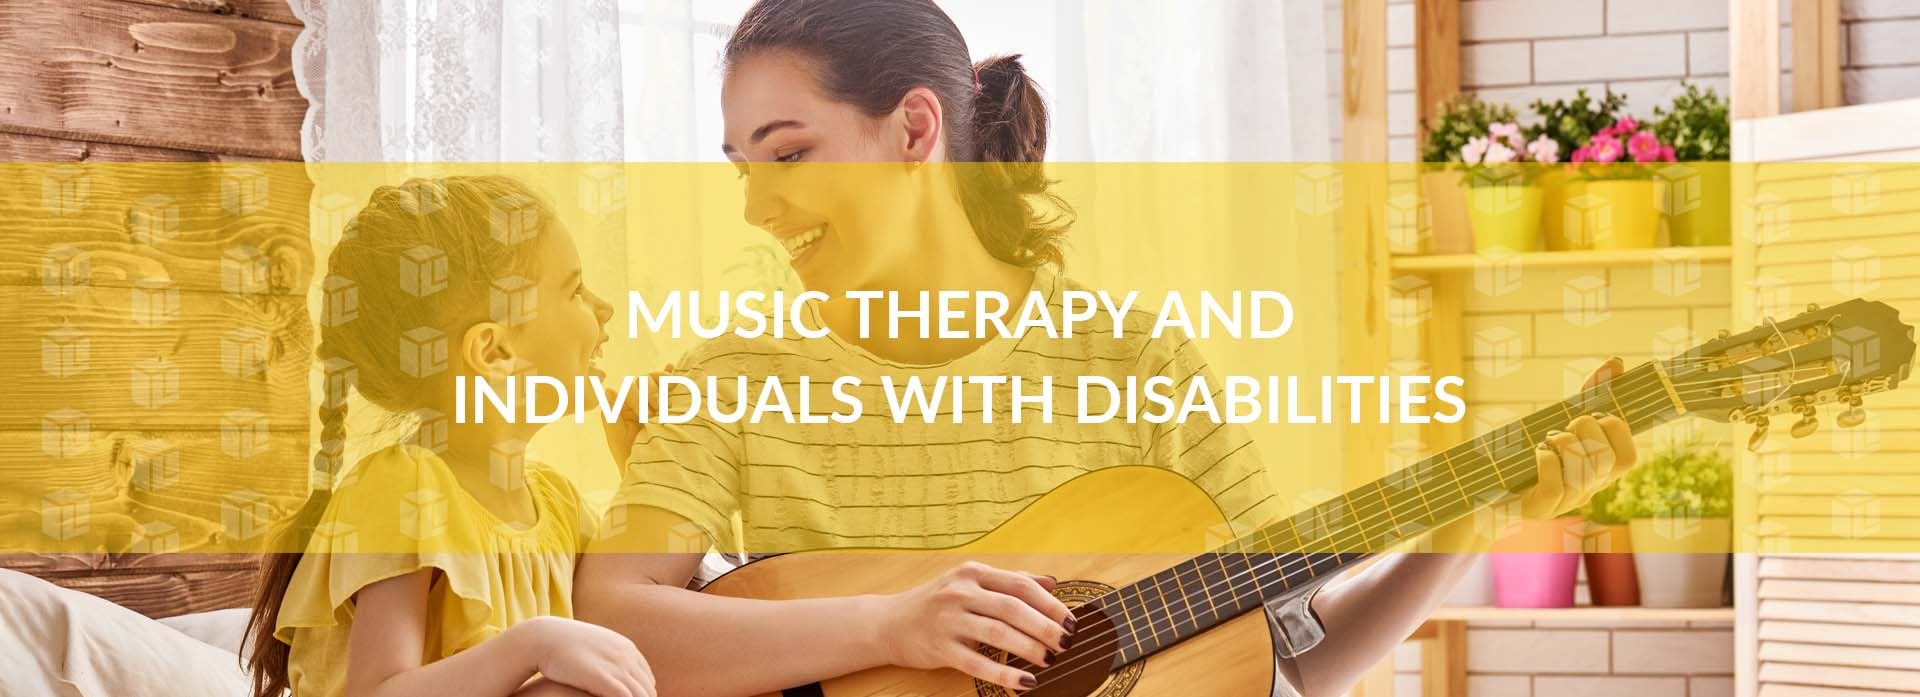 Music Therapy And Individuals With Disabilities